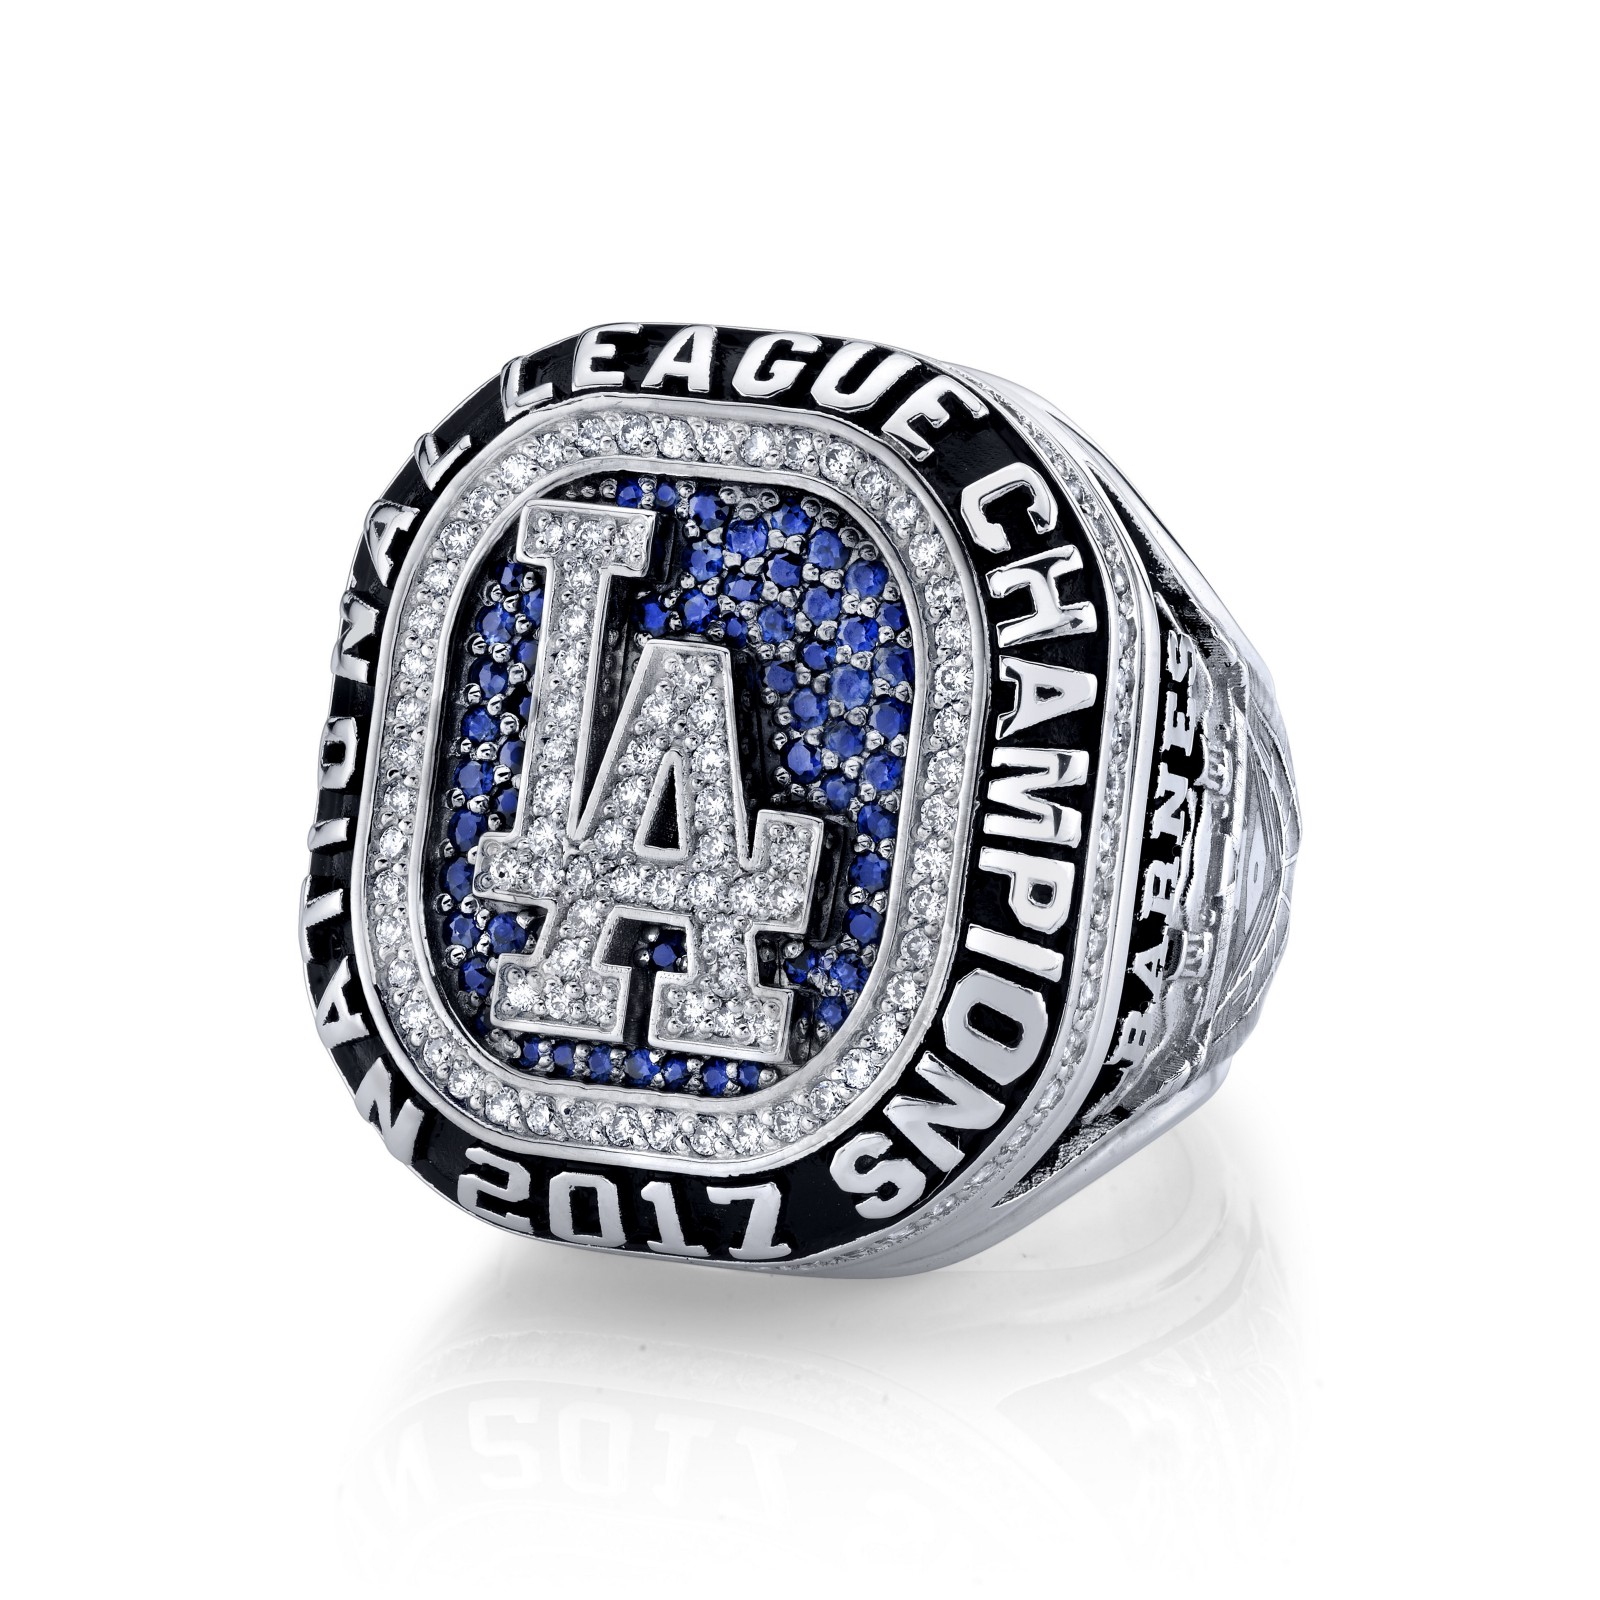 Dodgers presented with National League championship rings